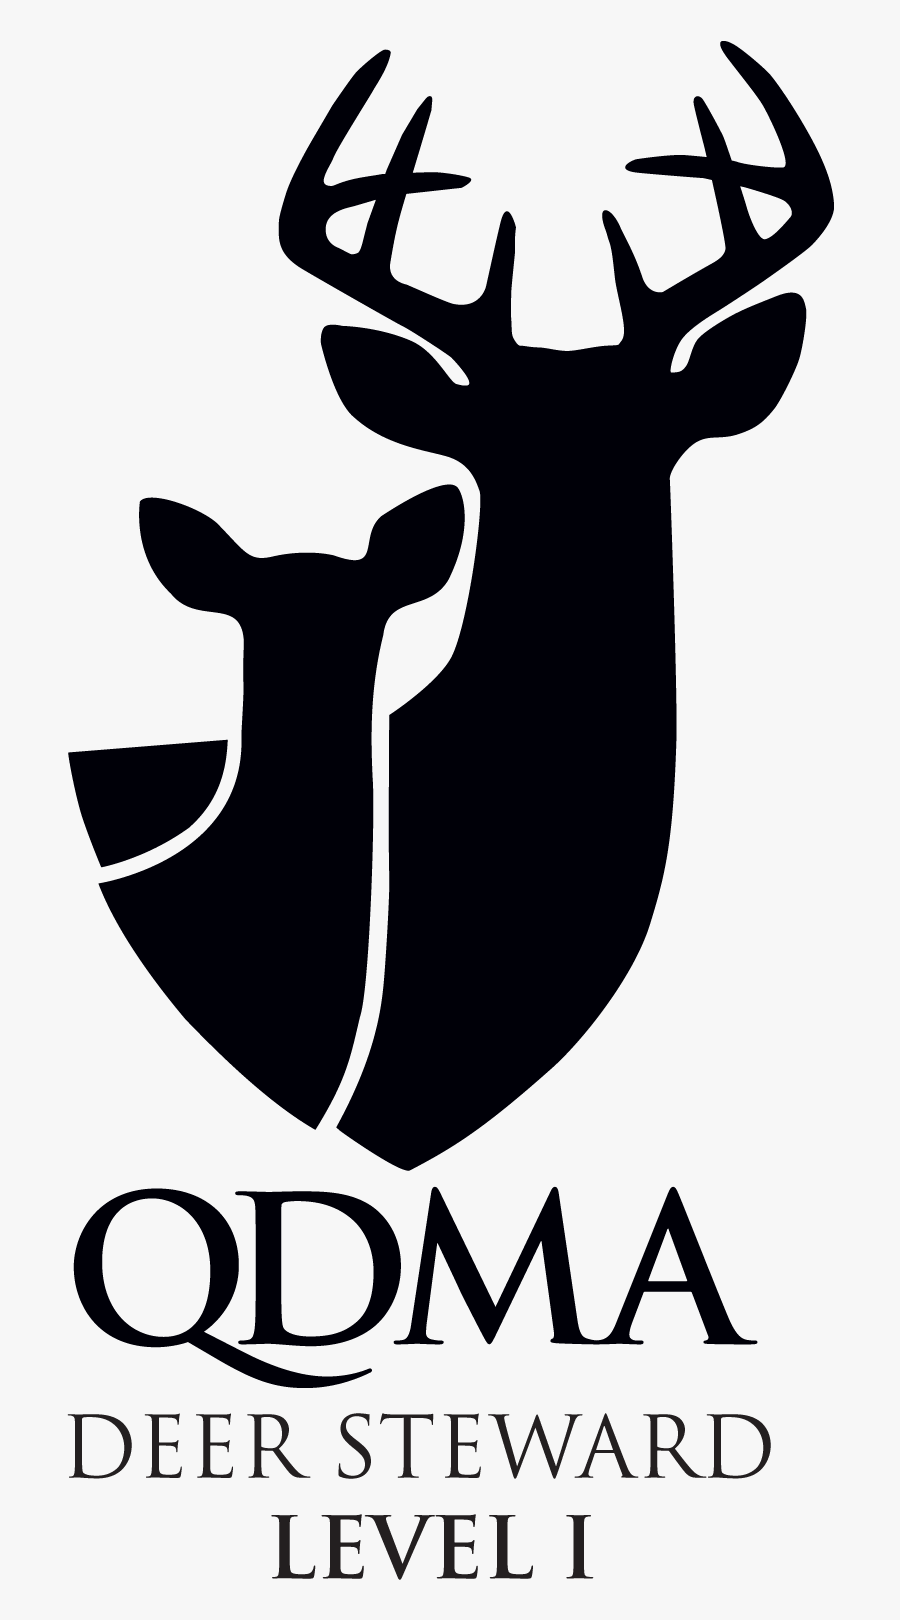 Qdma Deer Steward Level - Qdma Deer Steward Level 1, Transparent Clipart